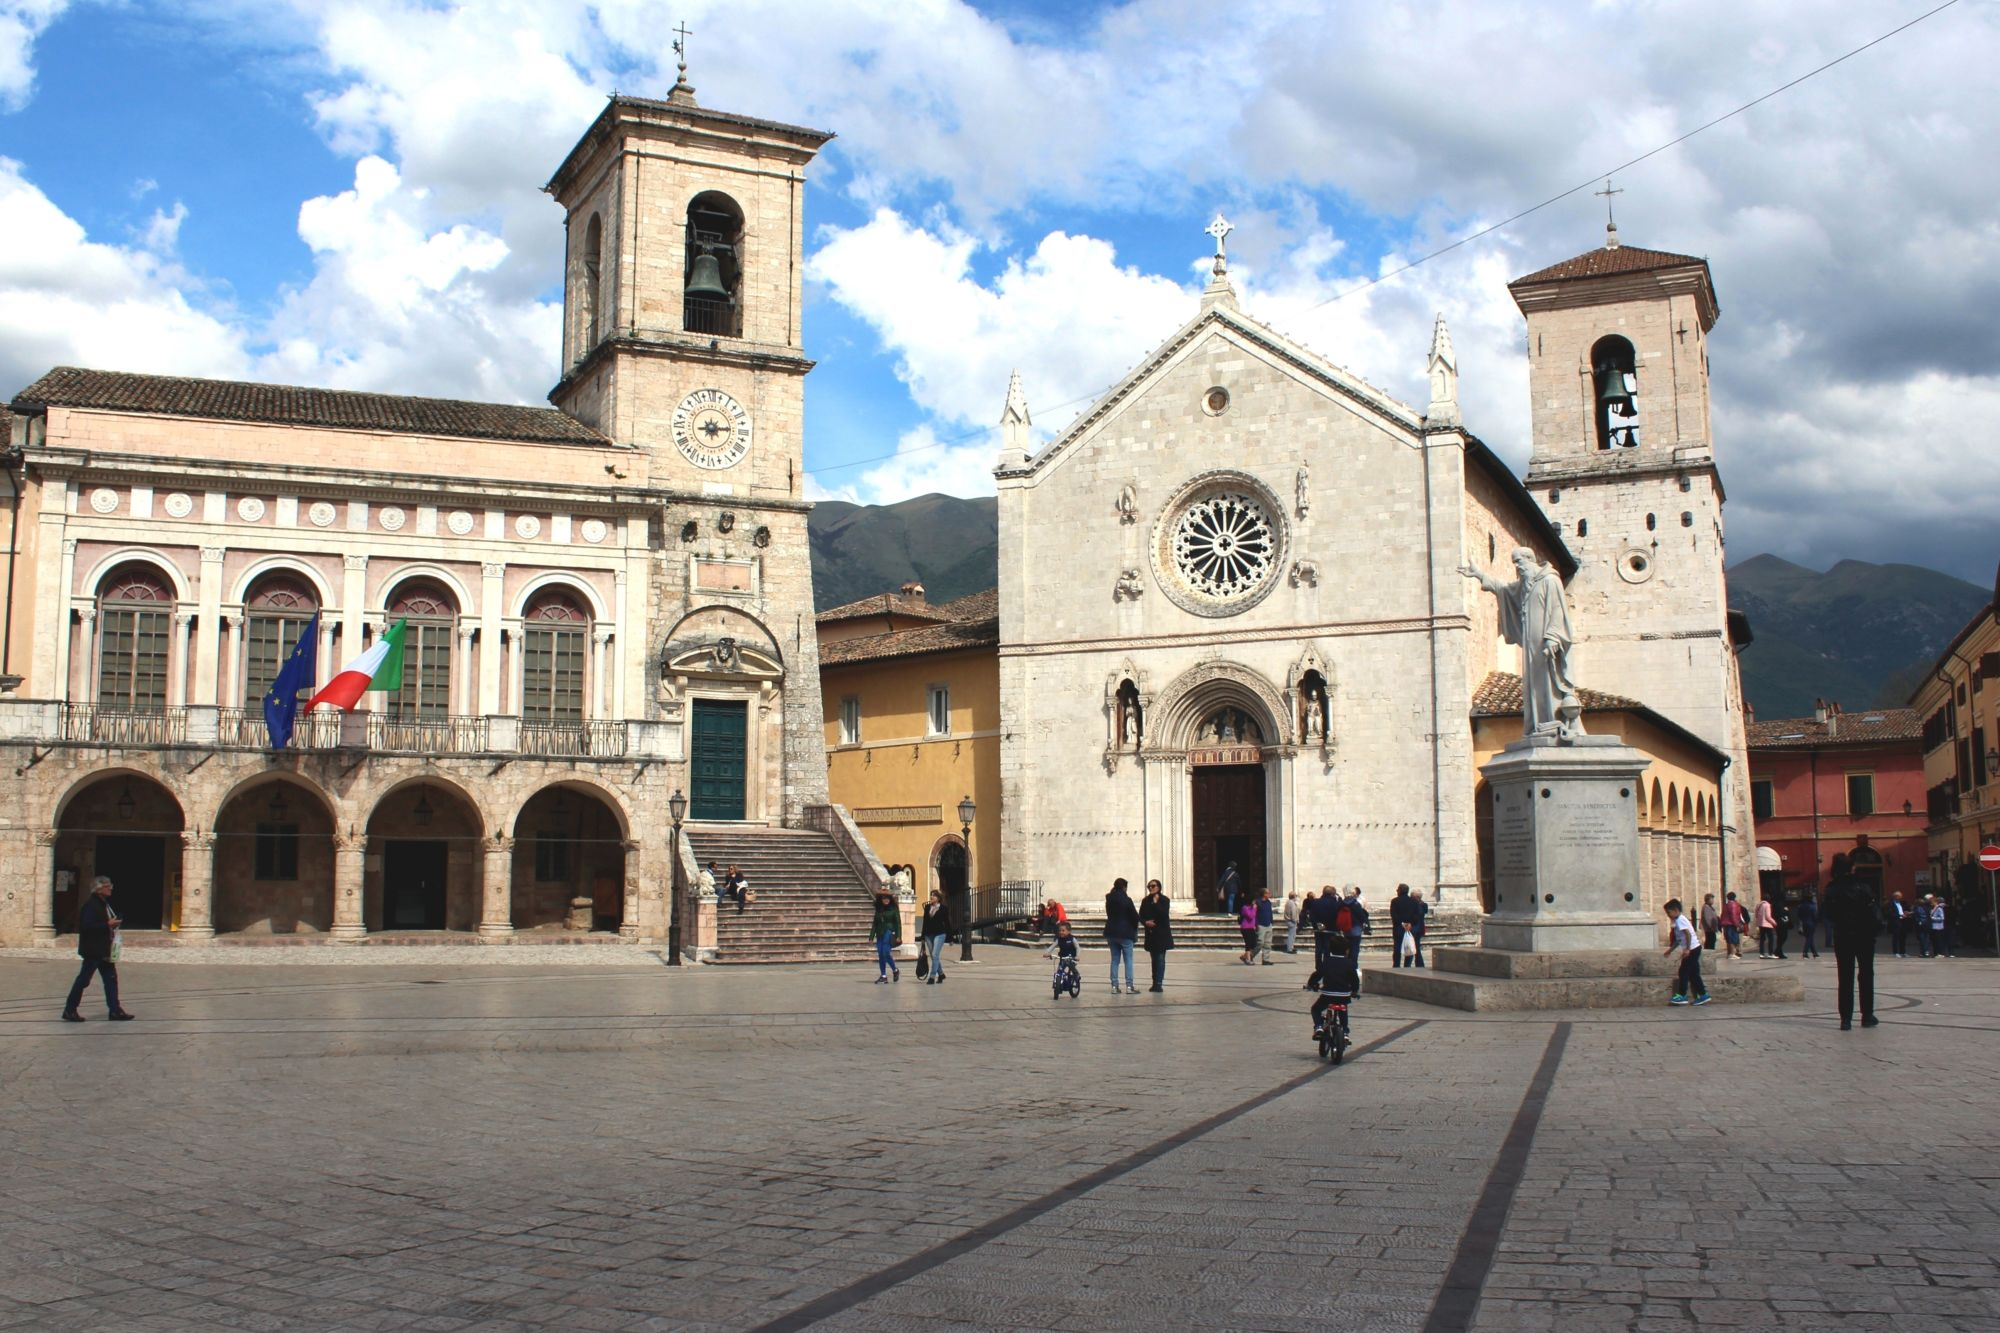 Umbria: The Green Heart of Italy Tours 2019 - 2020 -  Norcia Piazza